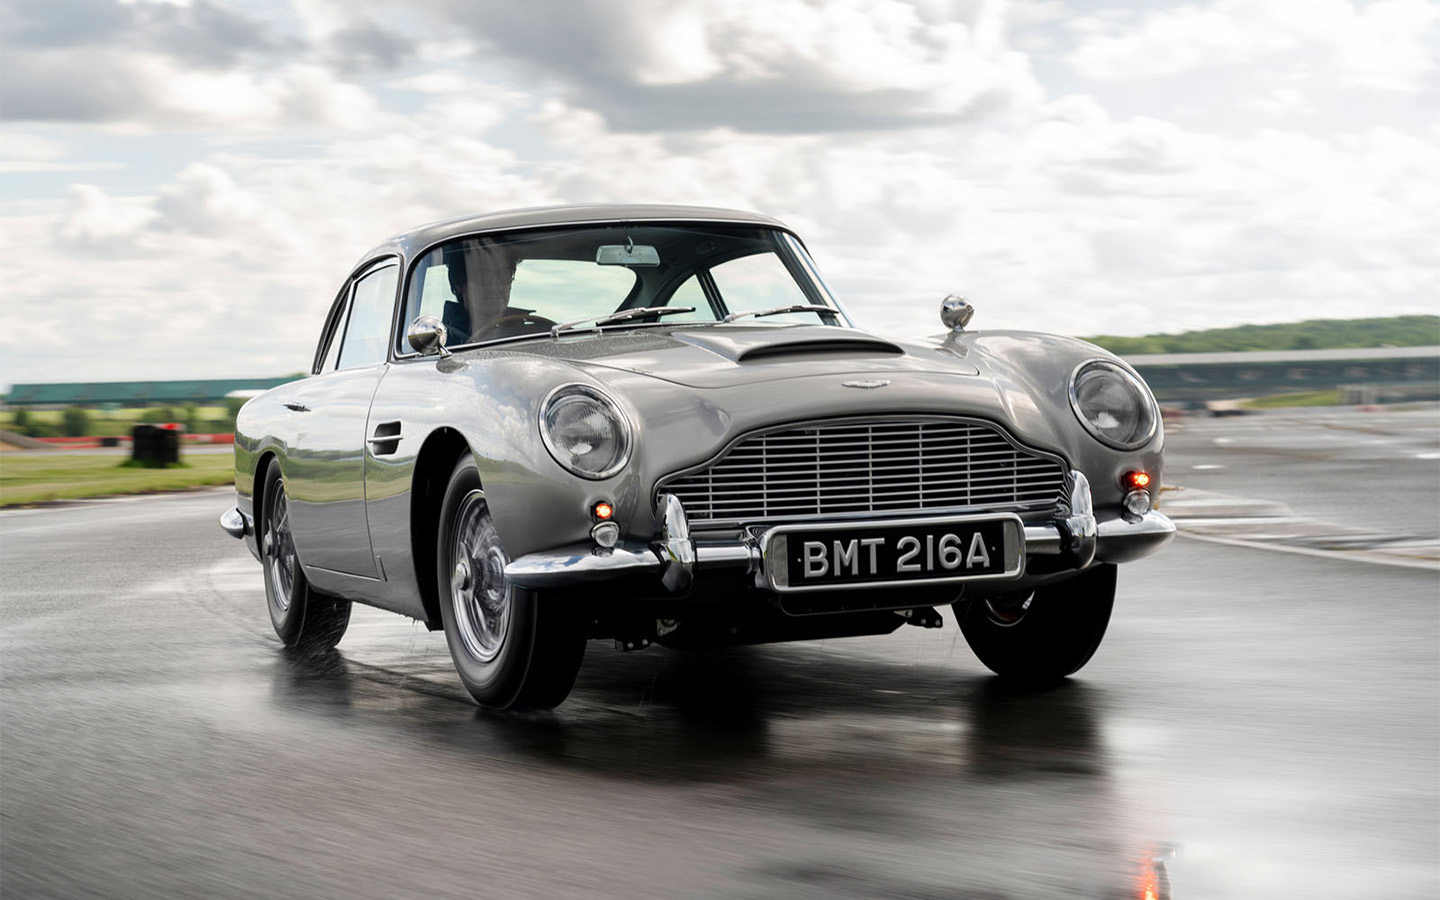 Aston Martin Heritage has finished working on the first DB5 vehicle themed after Agent 007's car of choice from the Goldfinger movie. A total of 25 units will be produced, and this specific example costs £2,750,000.